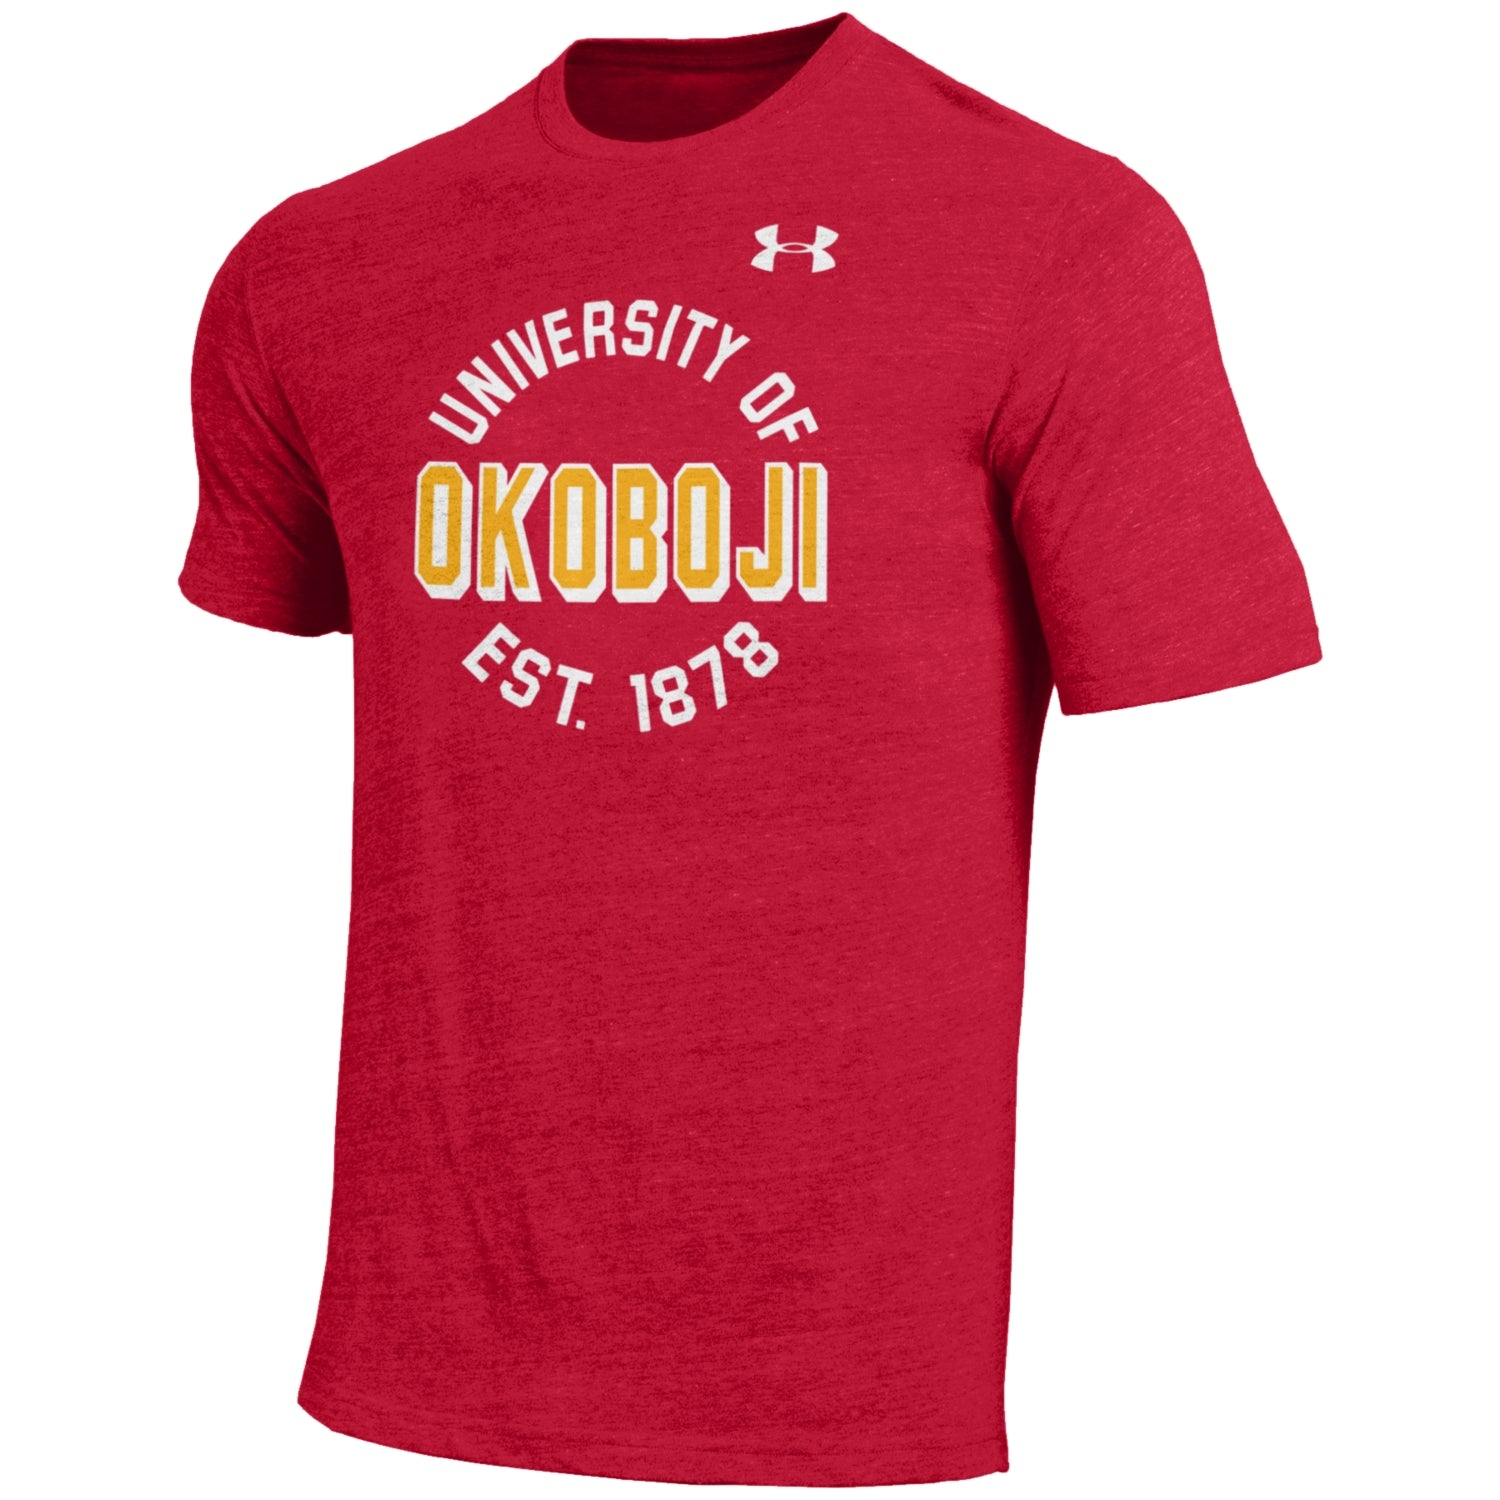 Under Armour Tri-Blend Red Tee - Gold OKOBOJI